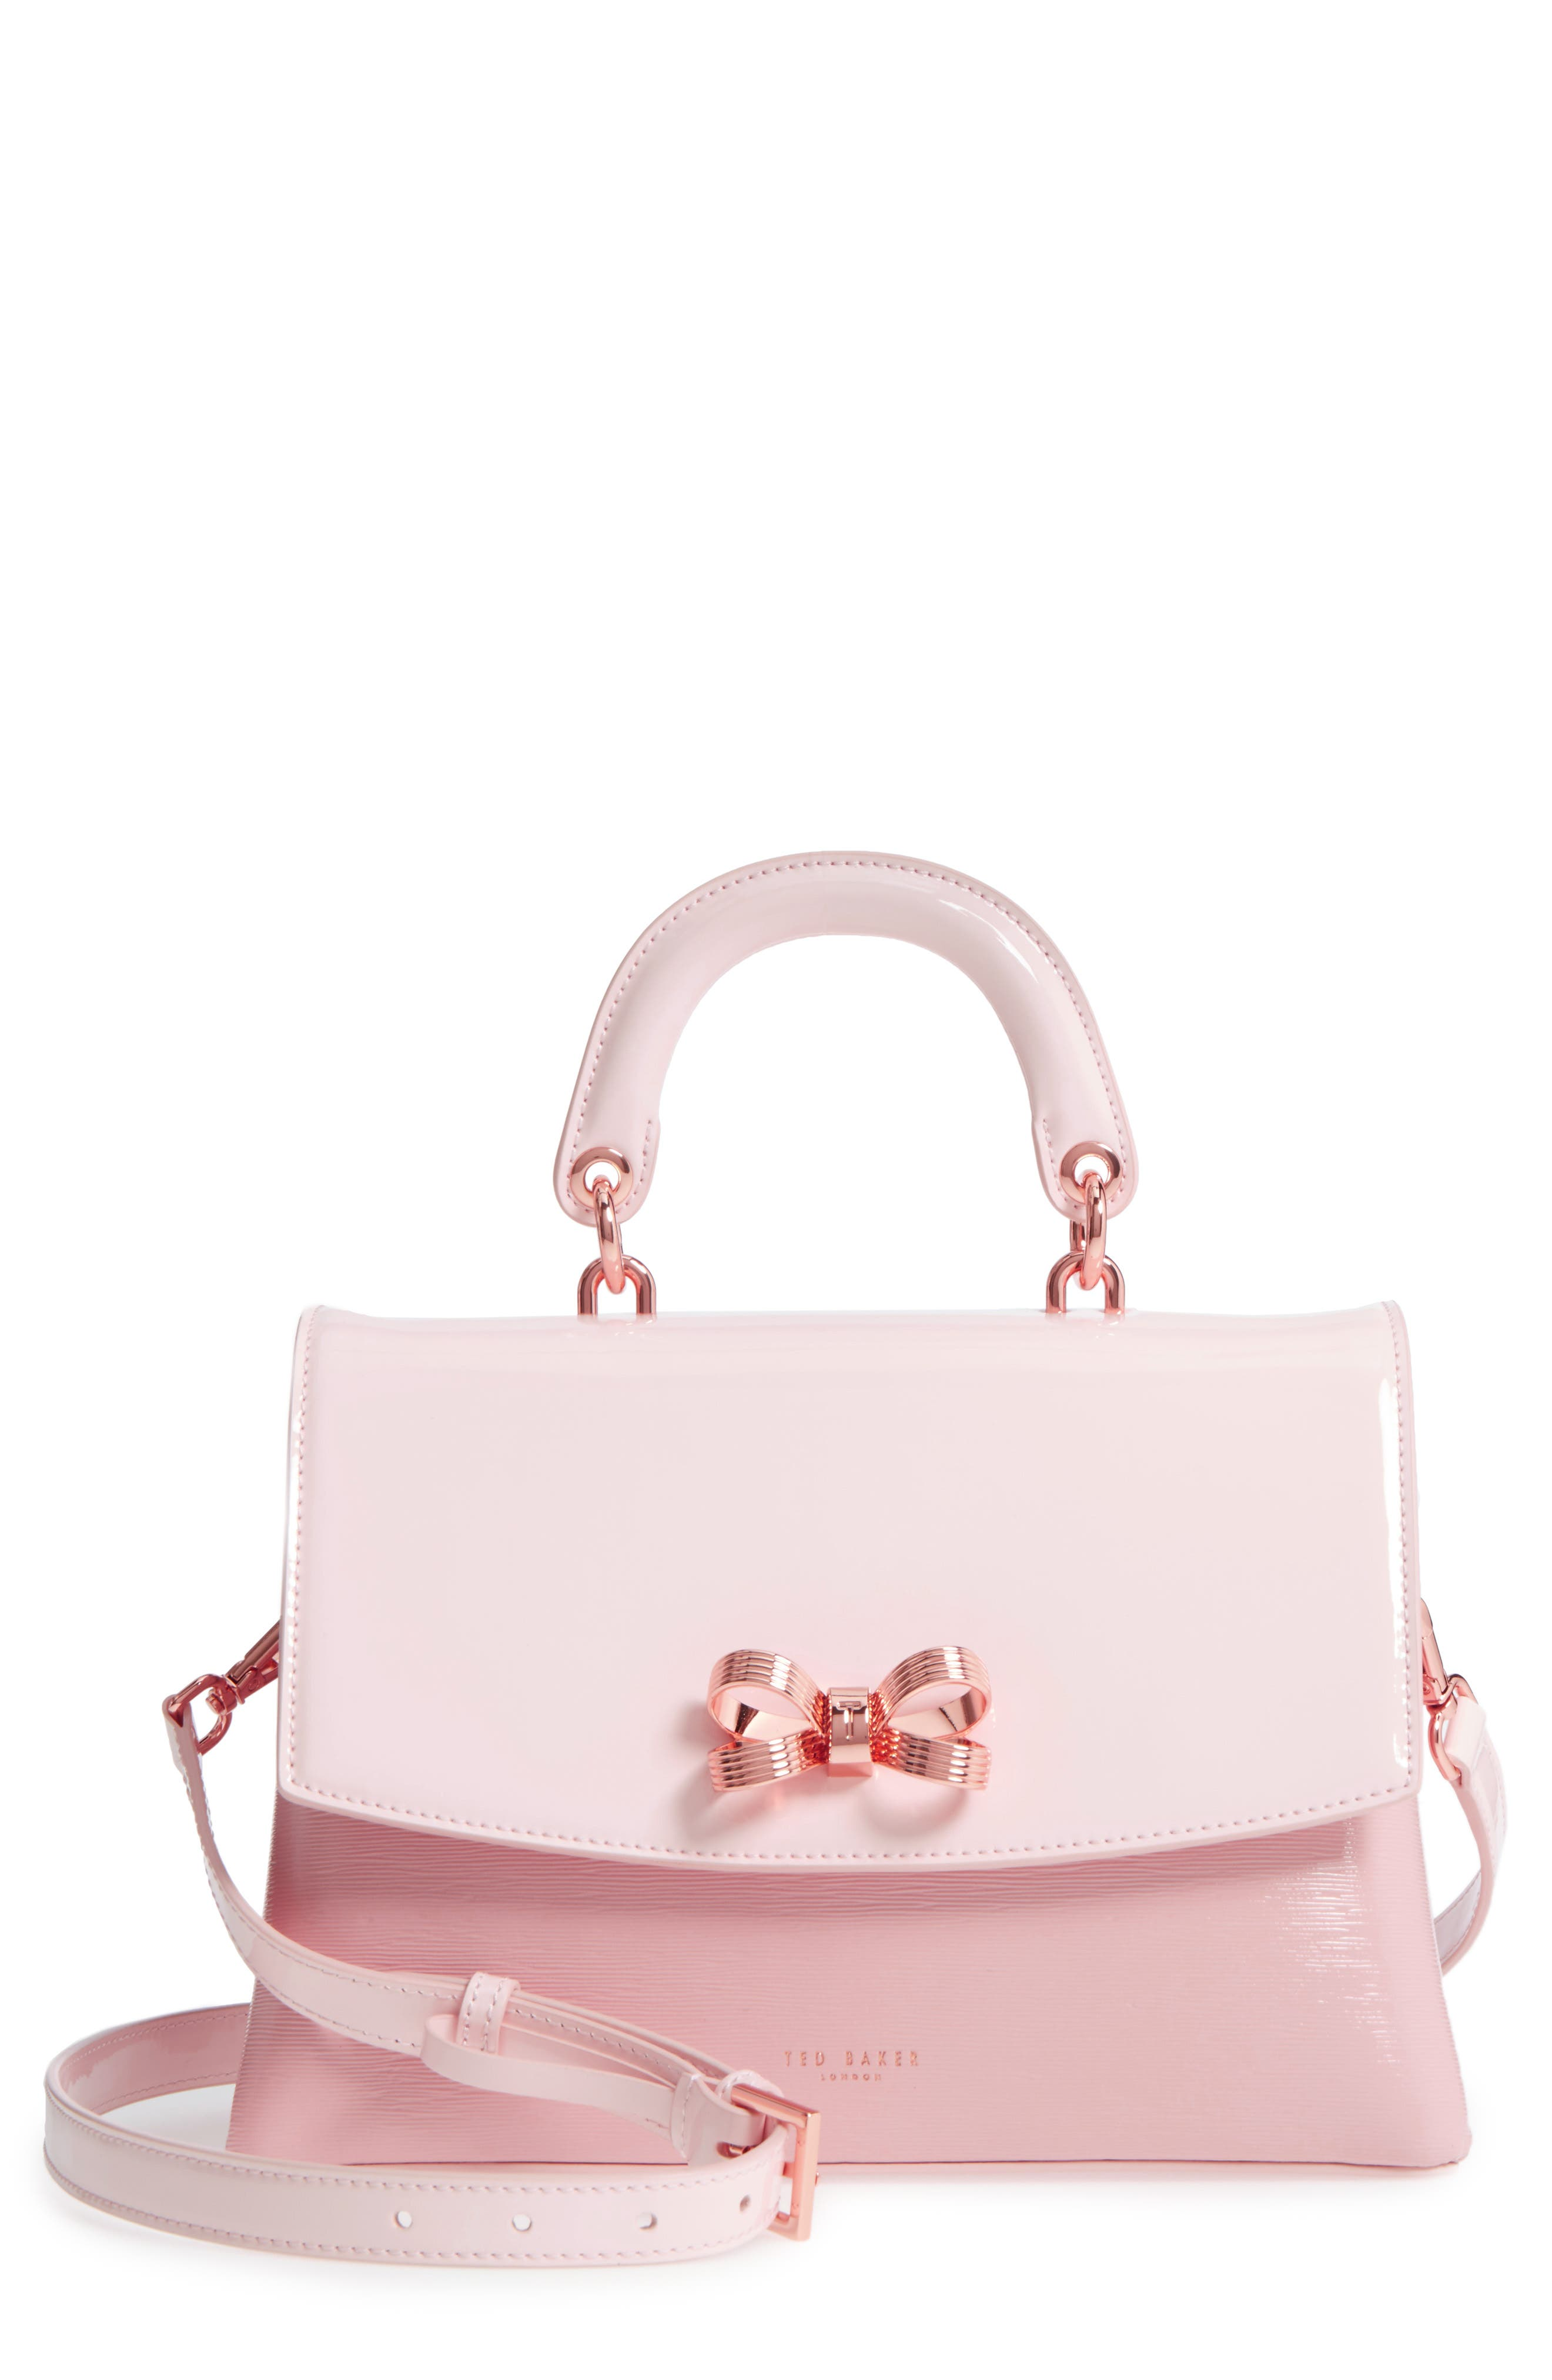 Ted Baker London Lilacc Lady Bag Leather Top Handle Satchel